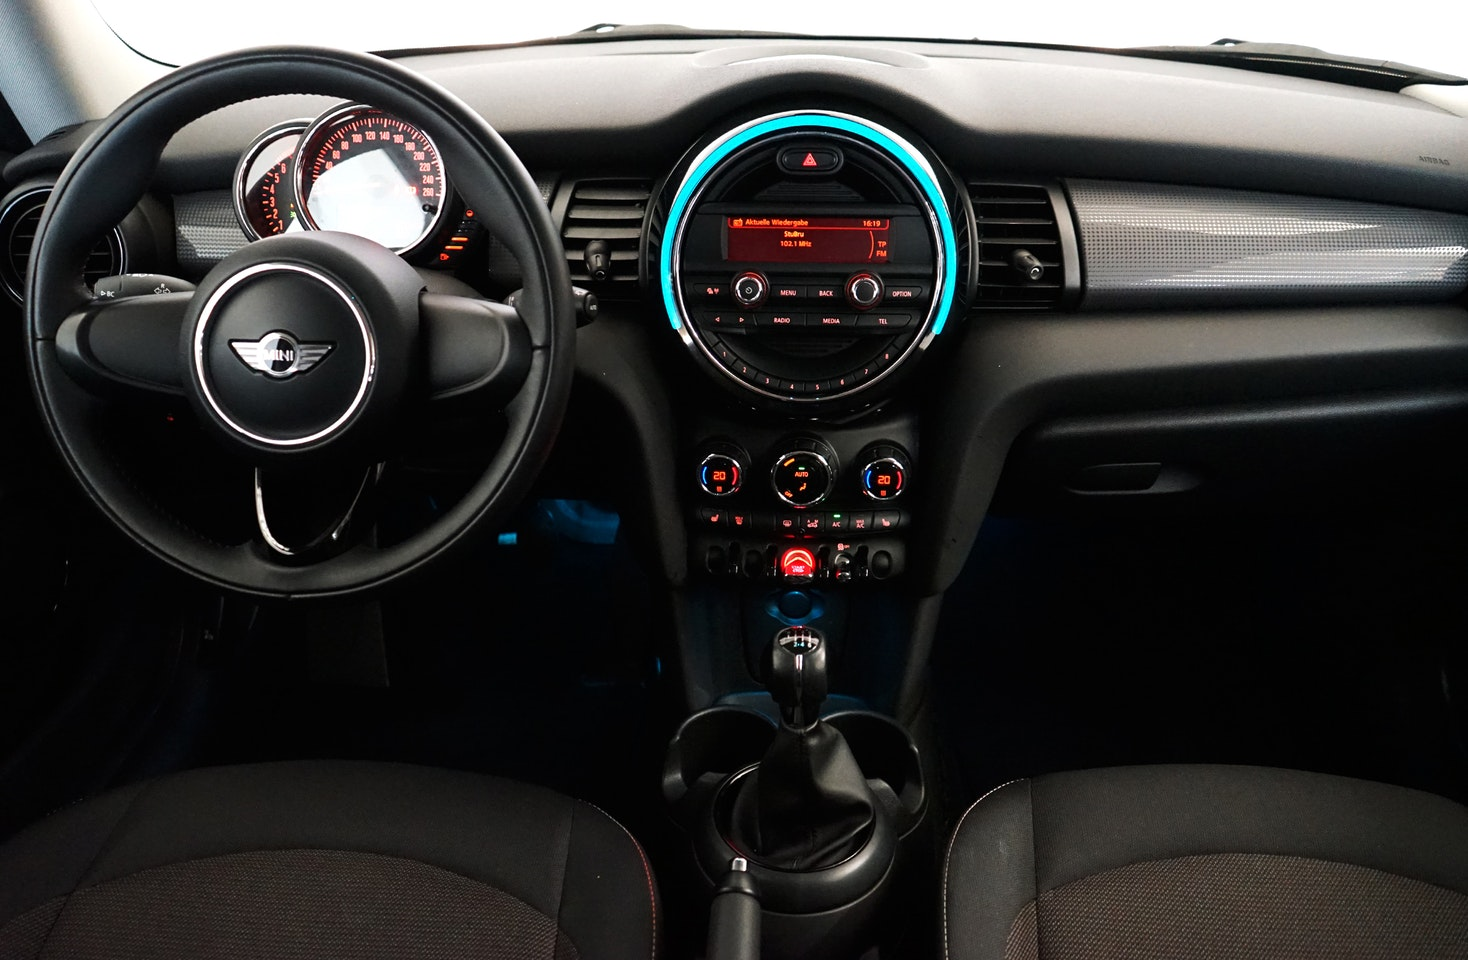 mycar-braine-lalleud-voitures-occasion-mini-cooper-one-first-10